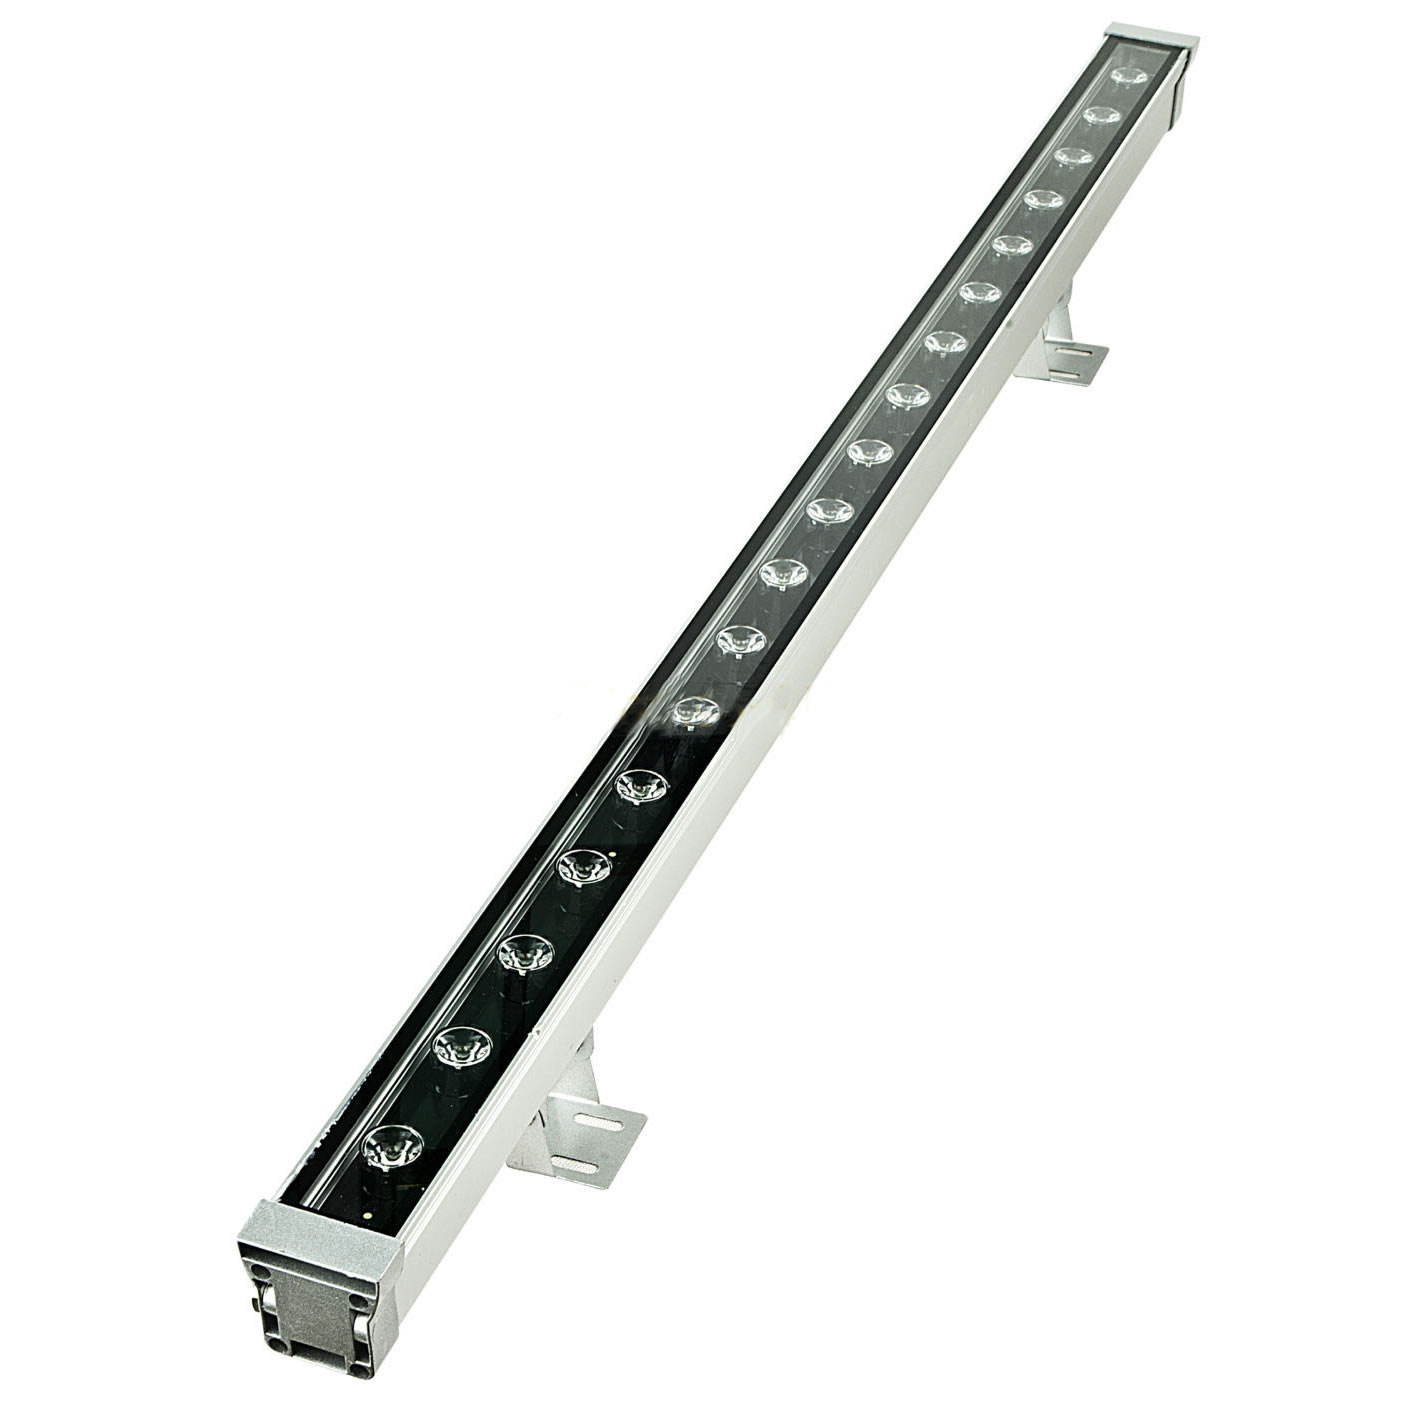 LED WALLWASHER 9W 0.50M